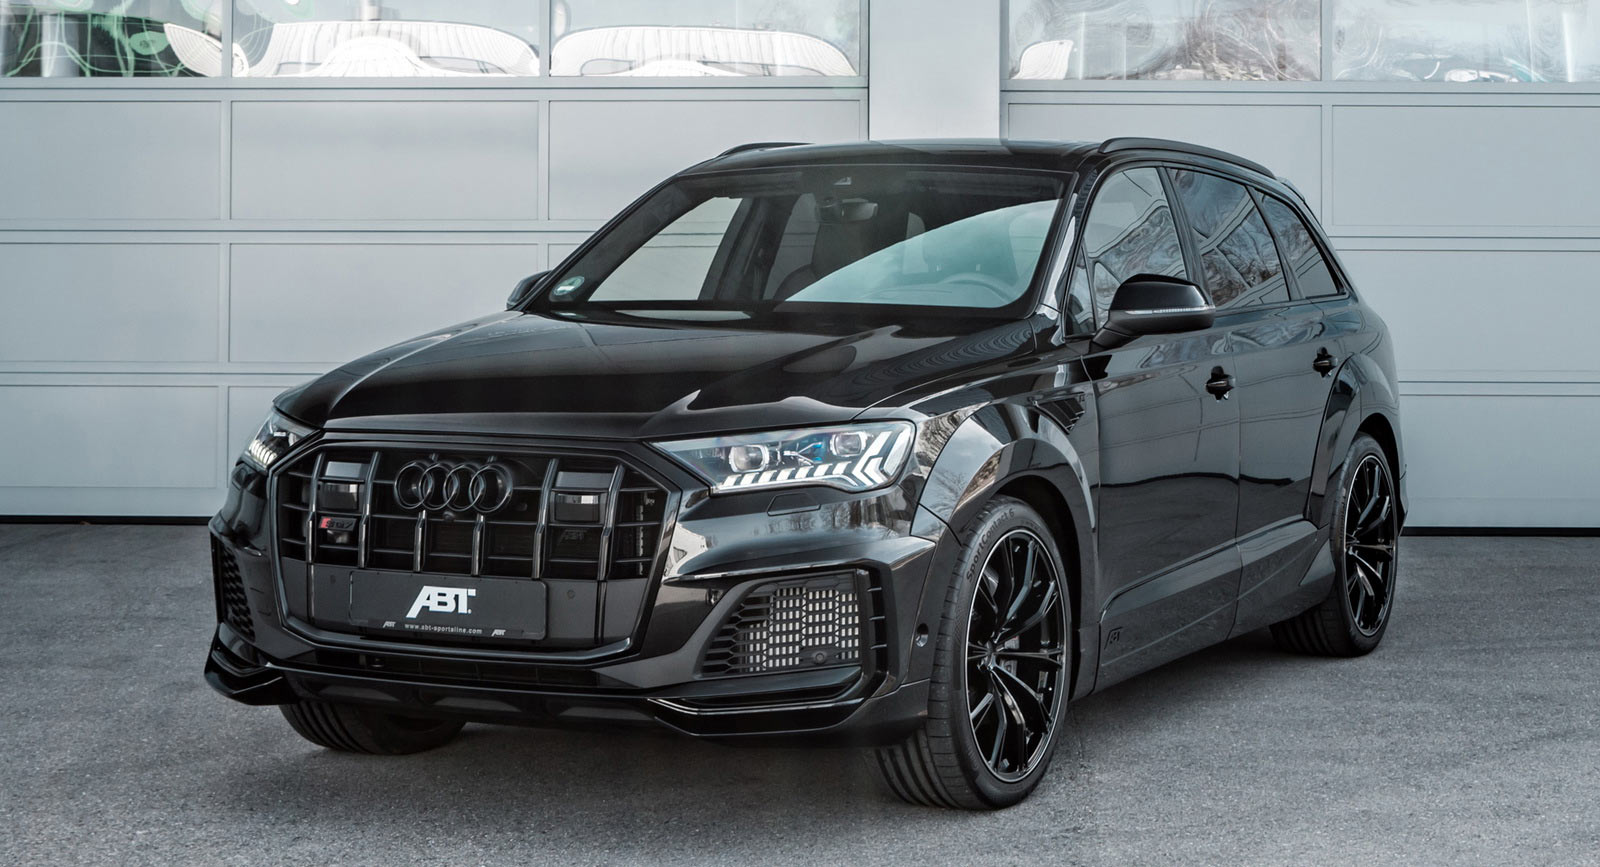 Widebody Audi Sq7 Takes Shape Thanks To Abt Sportsline Carscoops